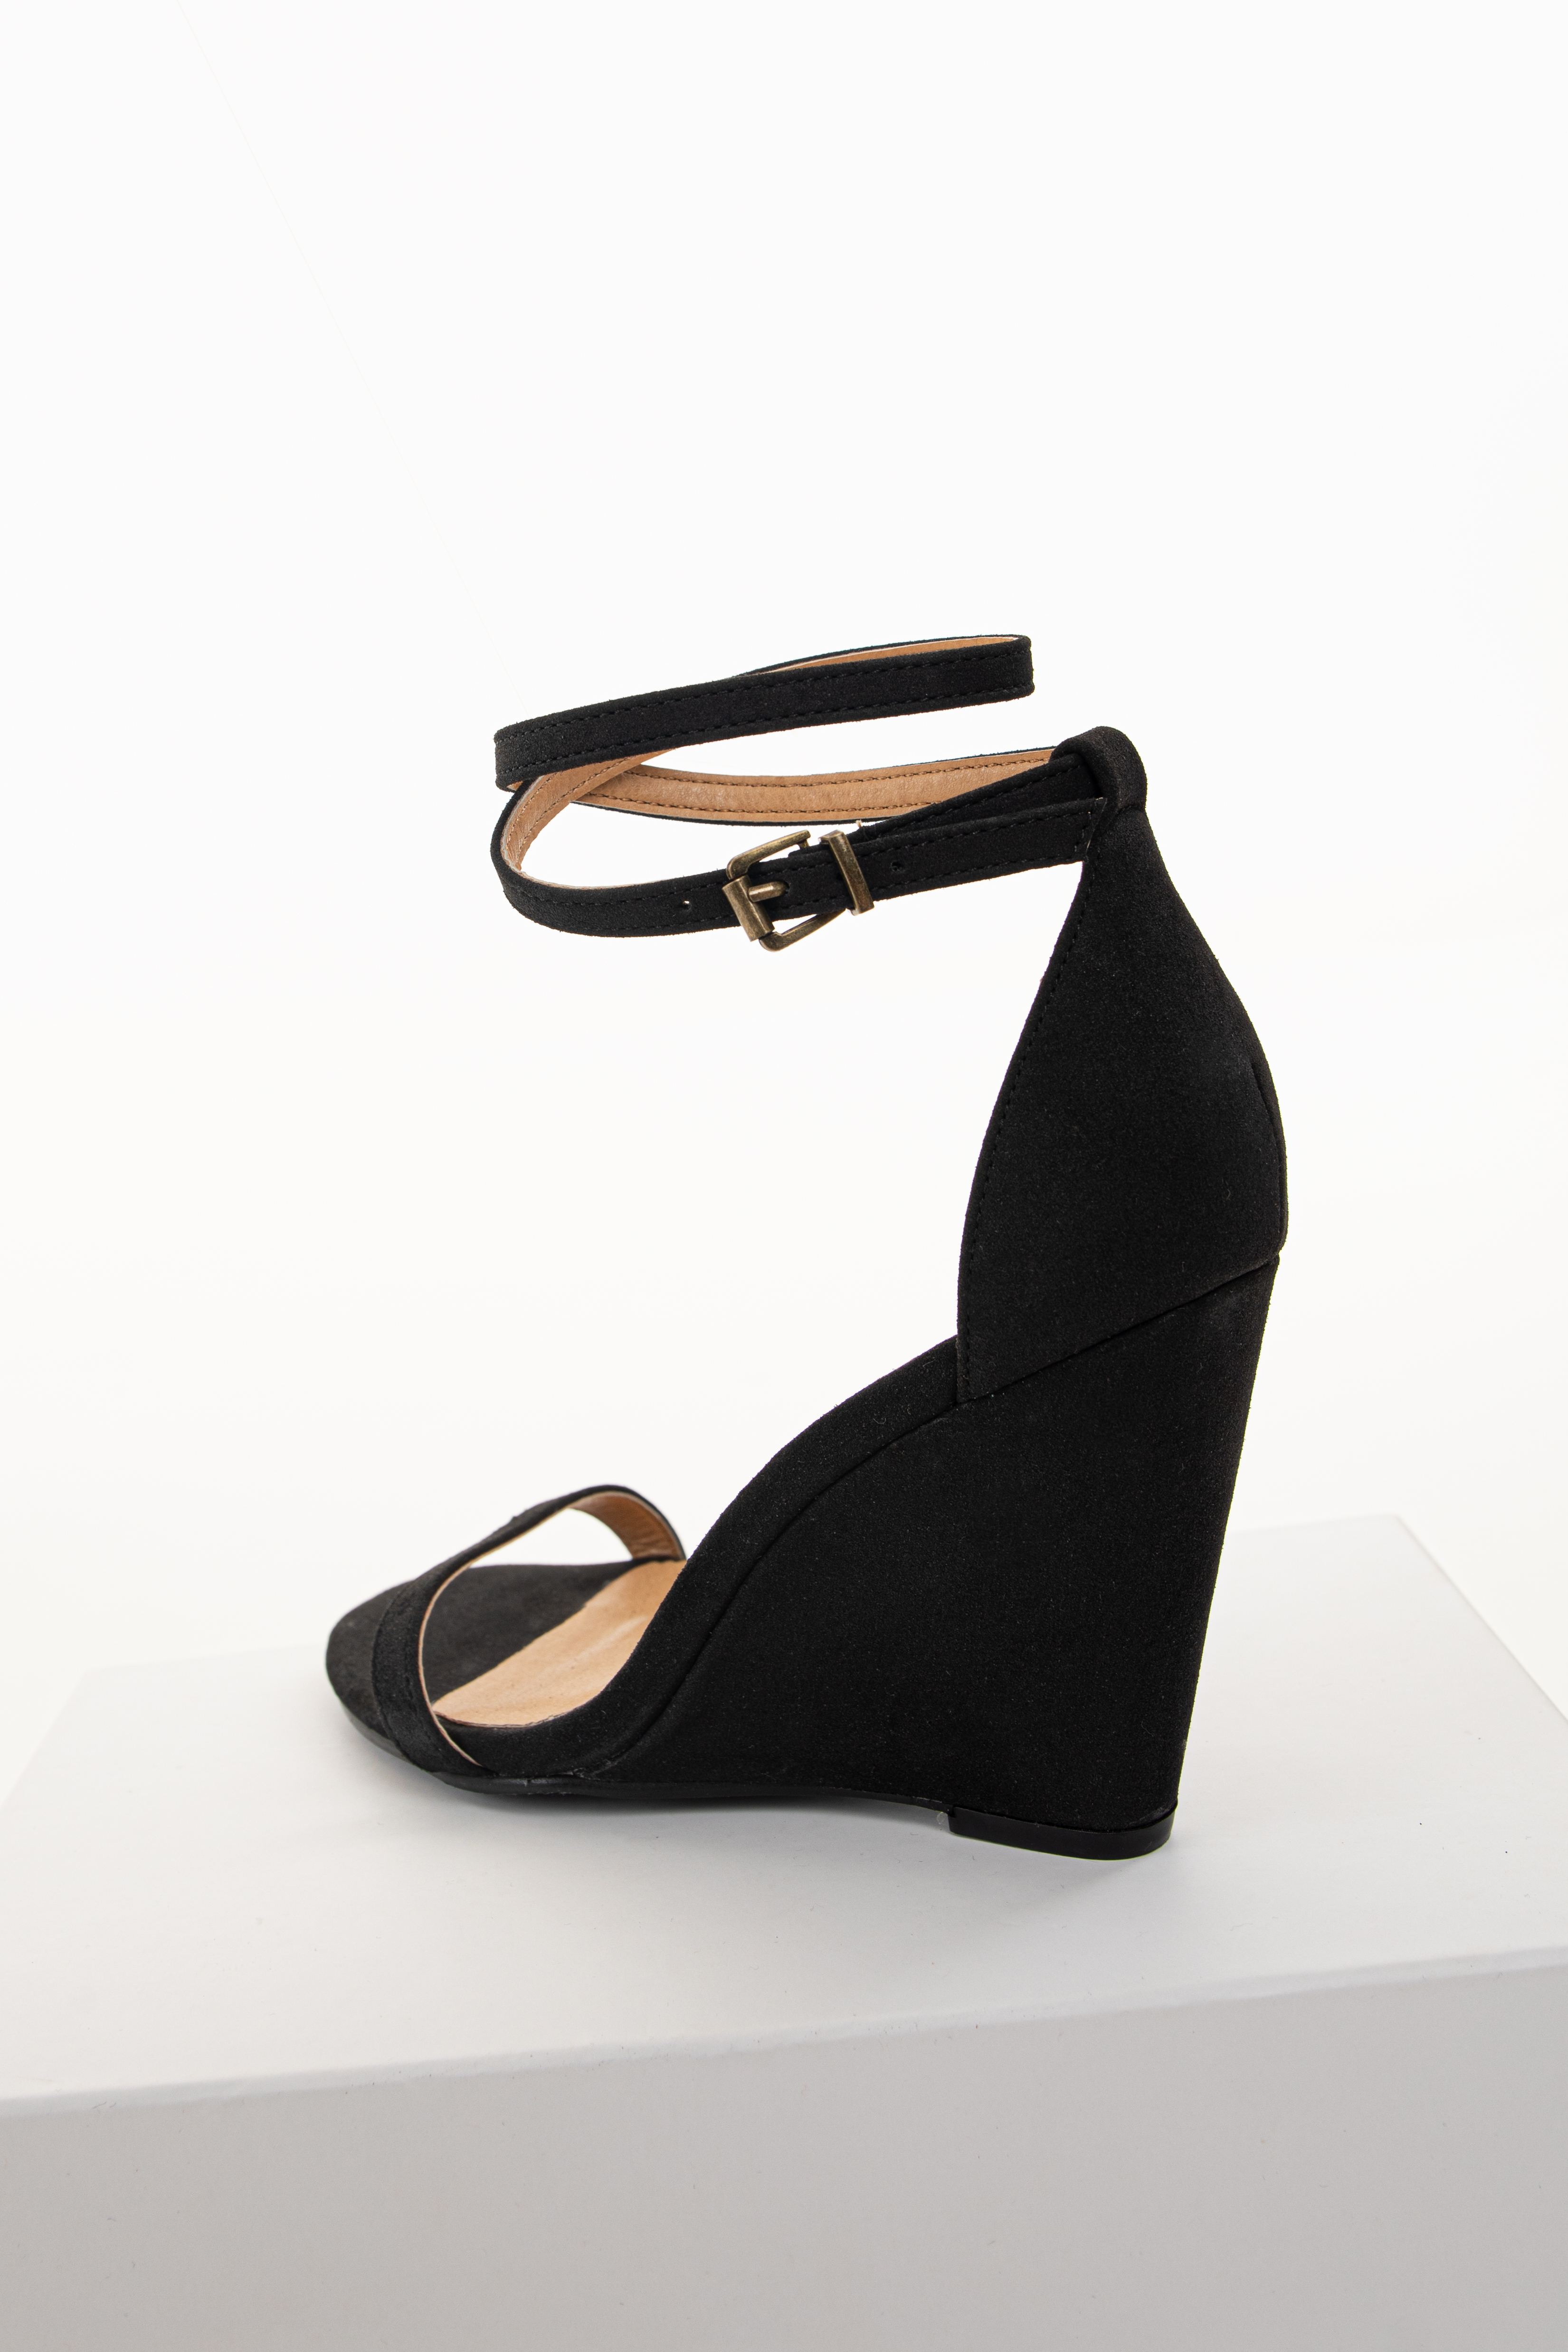 Black Faux Suede Wedge Sandals with Adjustable Dual Strap